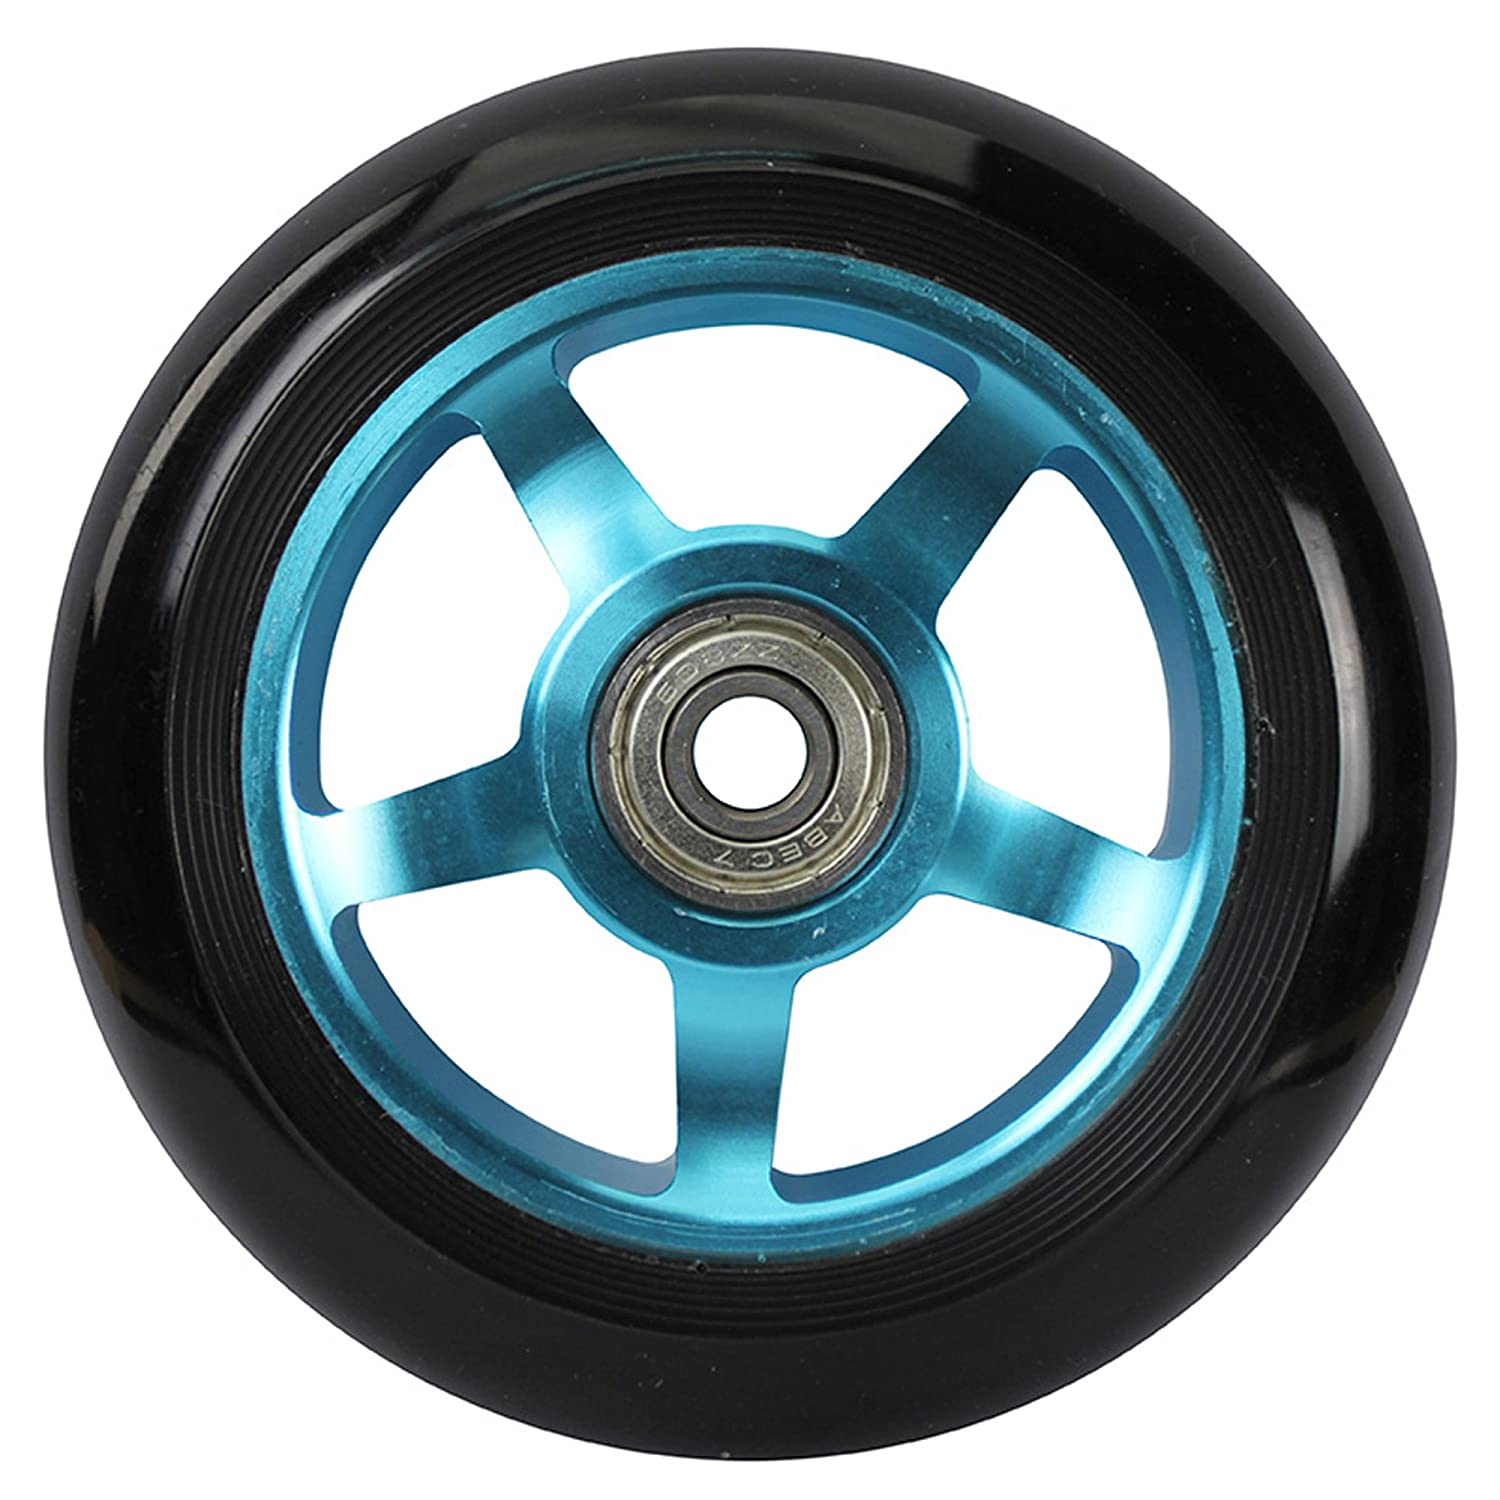 213 scooterwheel Kit 2 Ruedas de Patinete Buje ALU Unisex, Azul, 100 mm